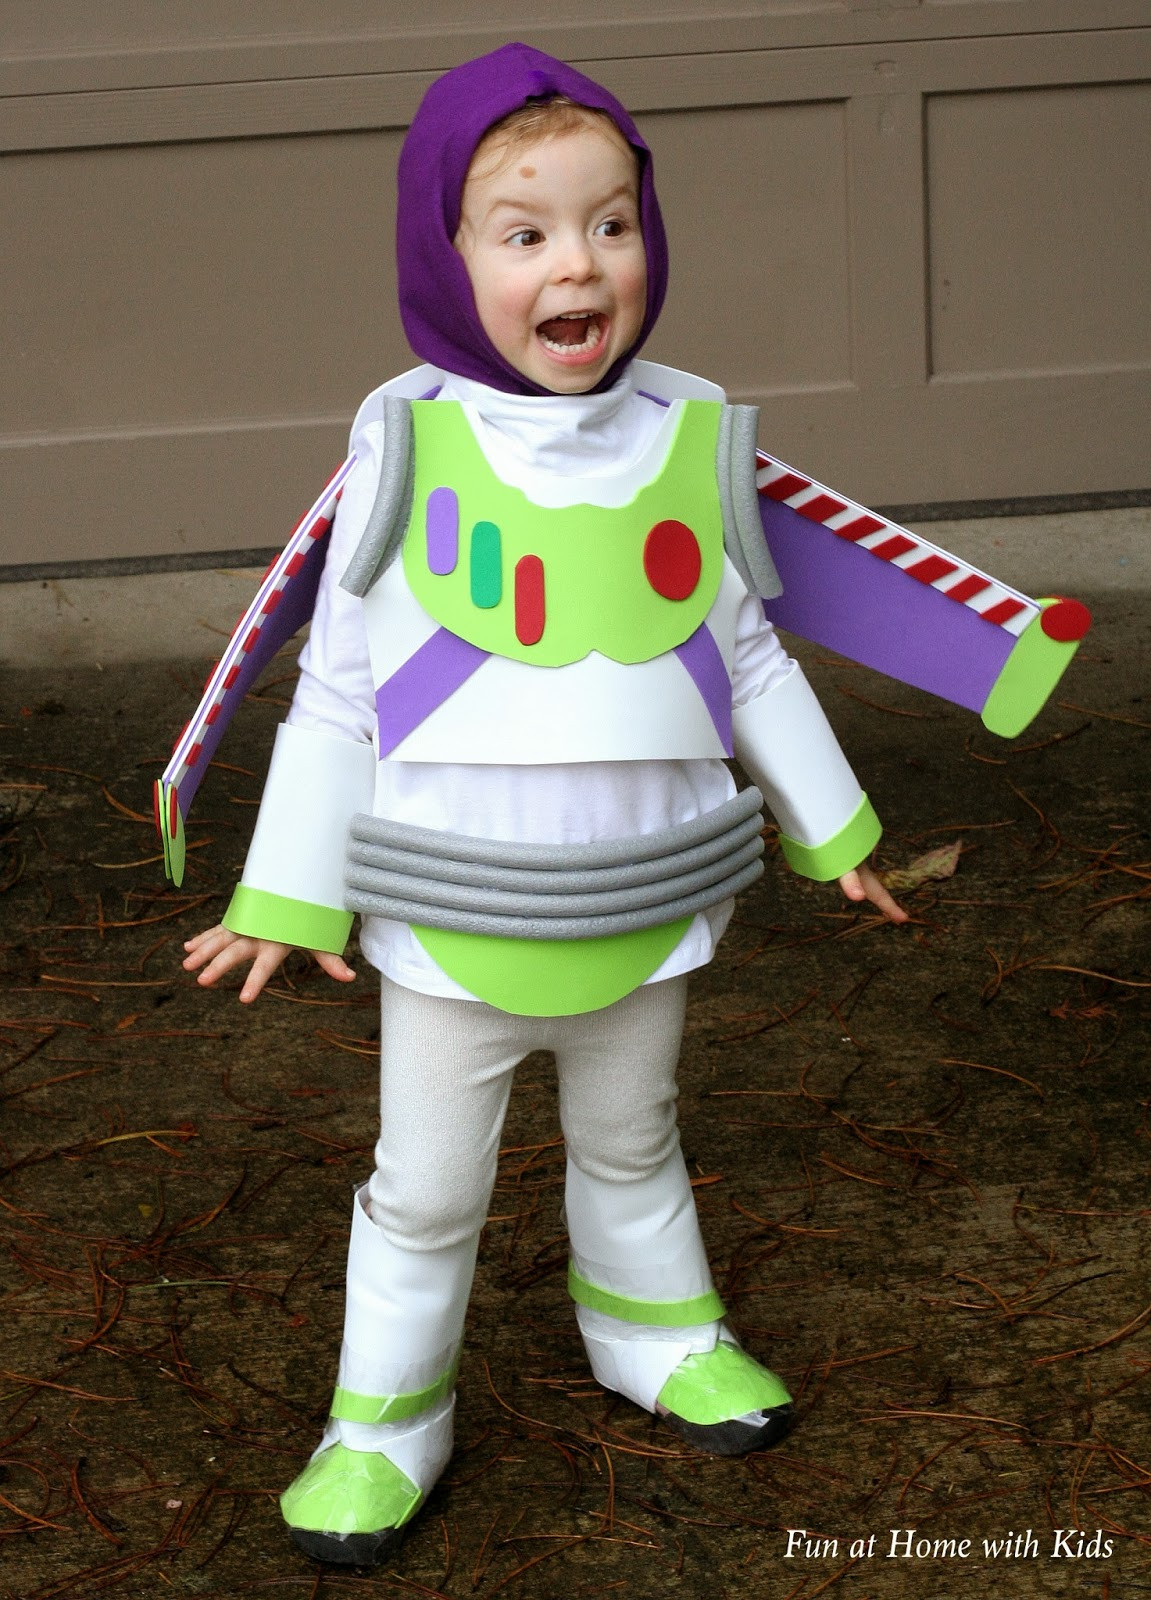 Best ideas about DIY Kids Halloween Costumes . Save or Pin DIY Kids Buzz Lightyear No Sew Halloween Costume Now.